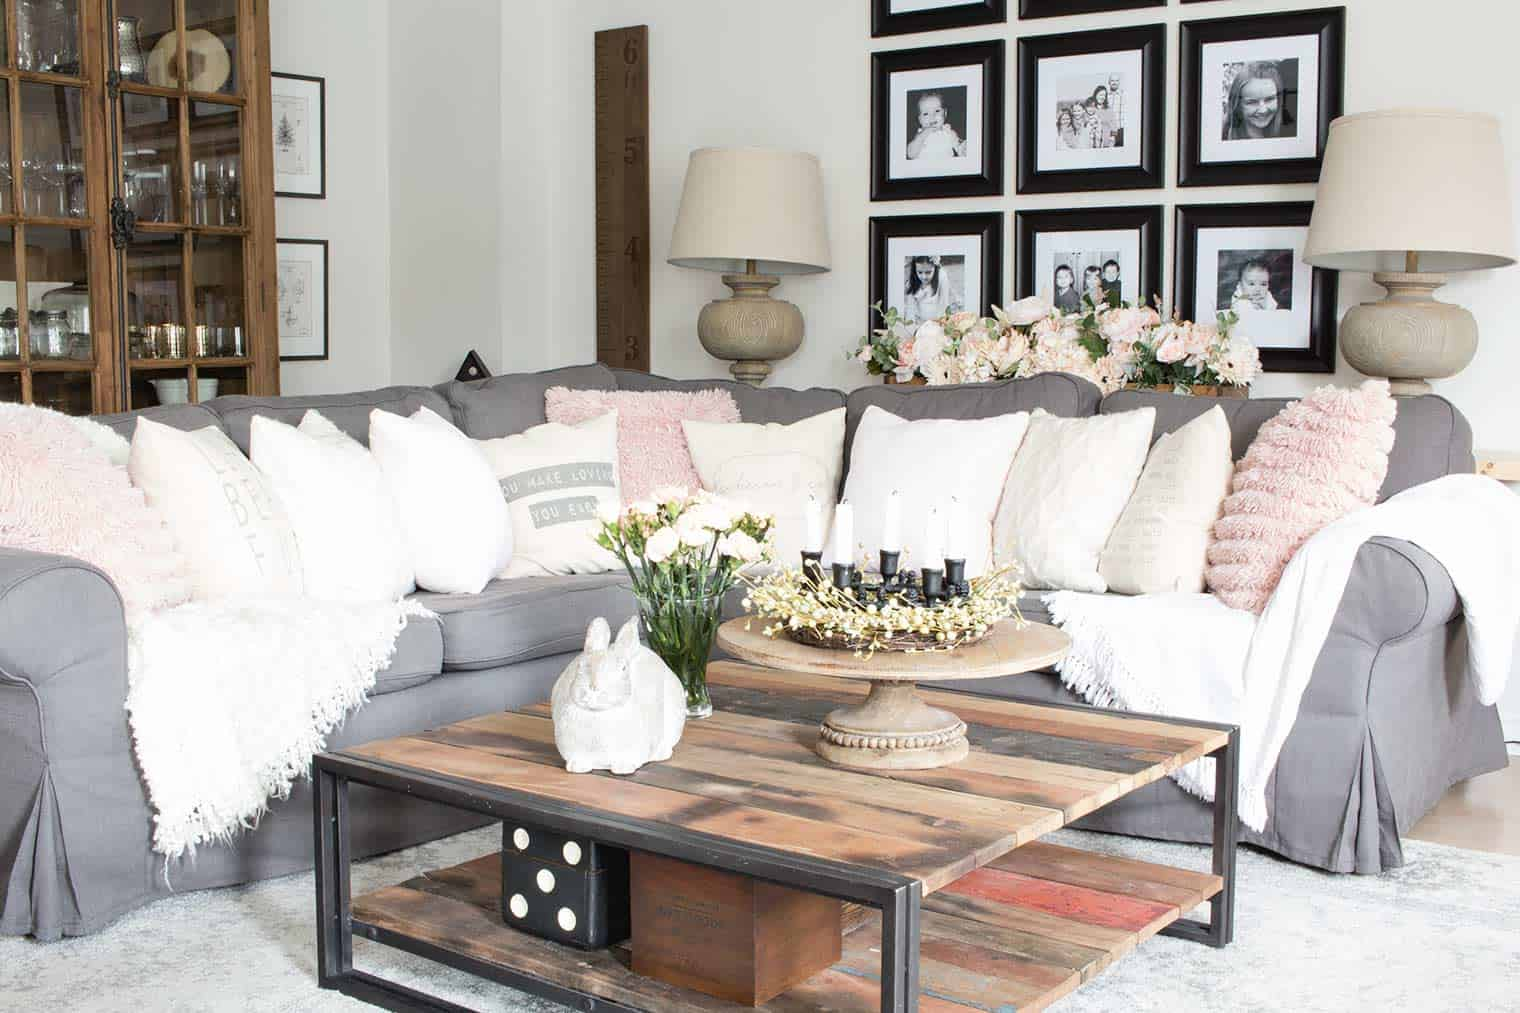 Farmhouse style living room sectional with blush and neutral pillows for Spring.